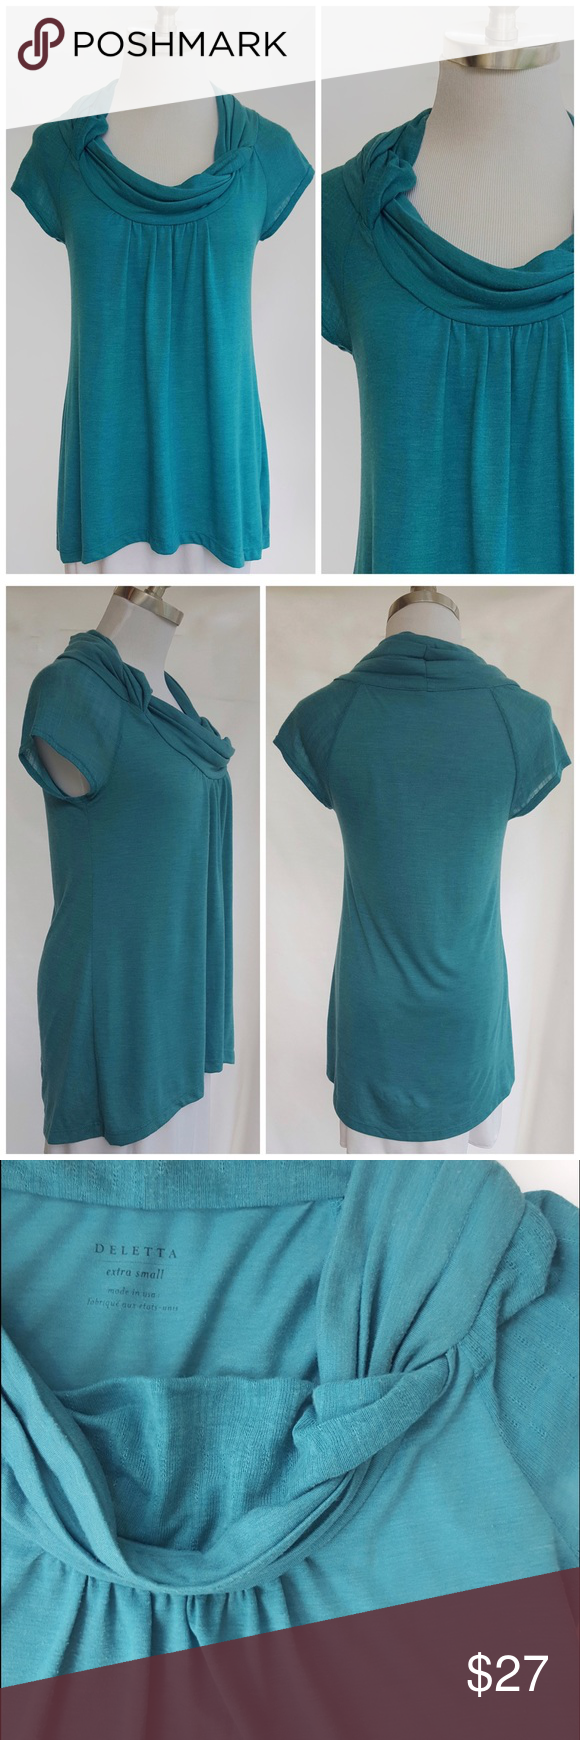 """Anthropologie Deletta / Super Soft Turquoise Beautiful top from Anthropologie by Deletta. Cowl neckline. Super soft and goes with so many things.   Color: blue green  Size: XS (mannequin is a size 2 to 4 for reference)  Underarm to underarm: 15"""" Length shoulder to hem: 25"""" *slightly longer hem in the back.  Fabric Content / Care: poly/rayon--hand wash  Condition:  excellent with very minimal wear. No flaws.  Save with Bundles! Suggested User \ 5 star seller No PP, Merc, Trades or Holds…"""